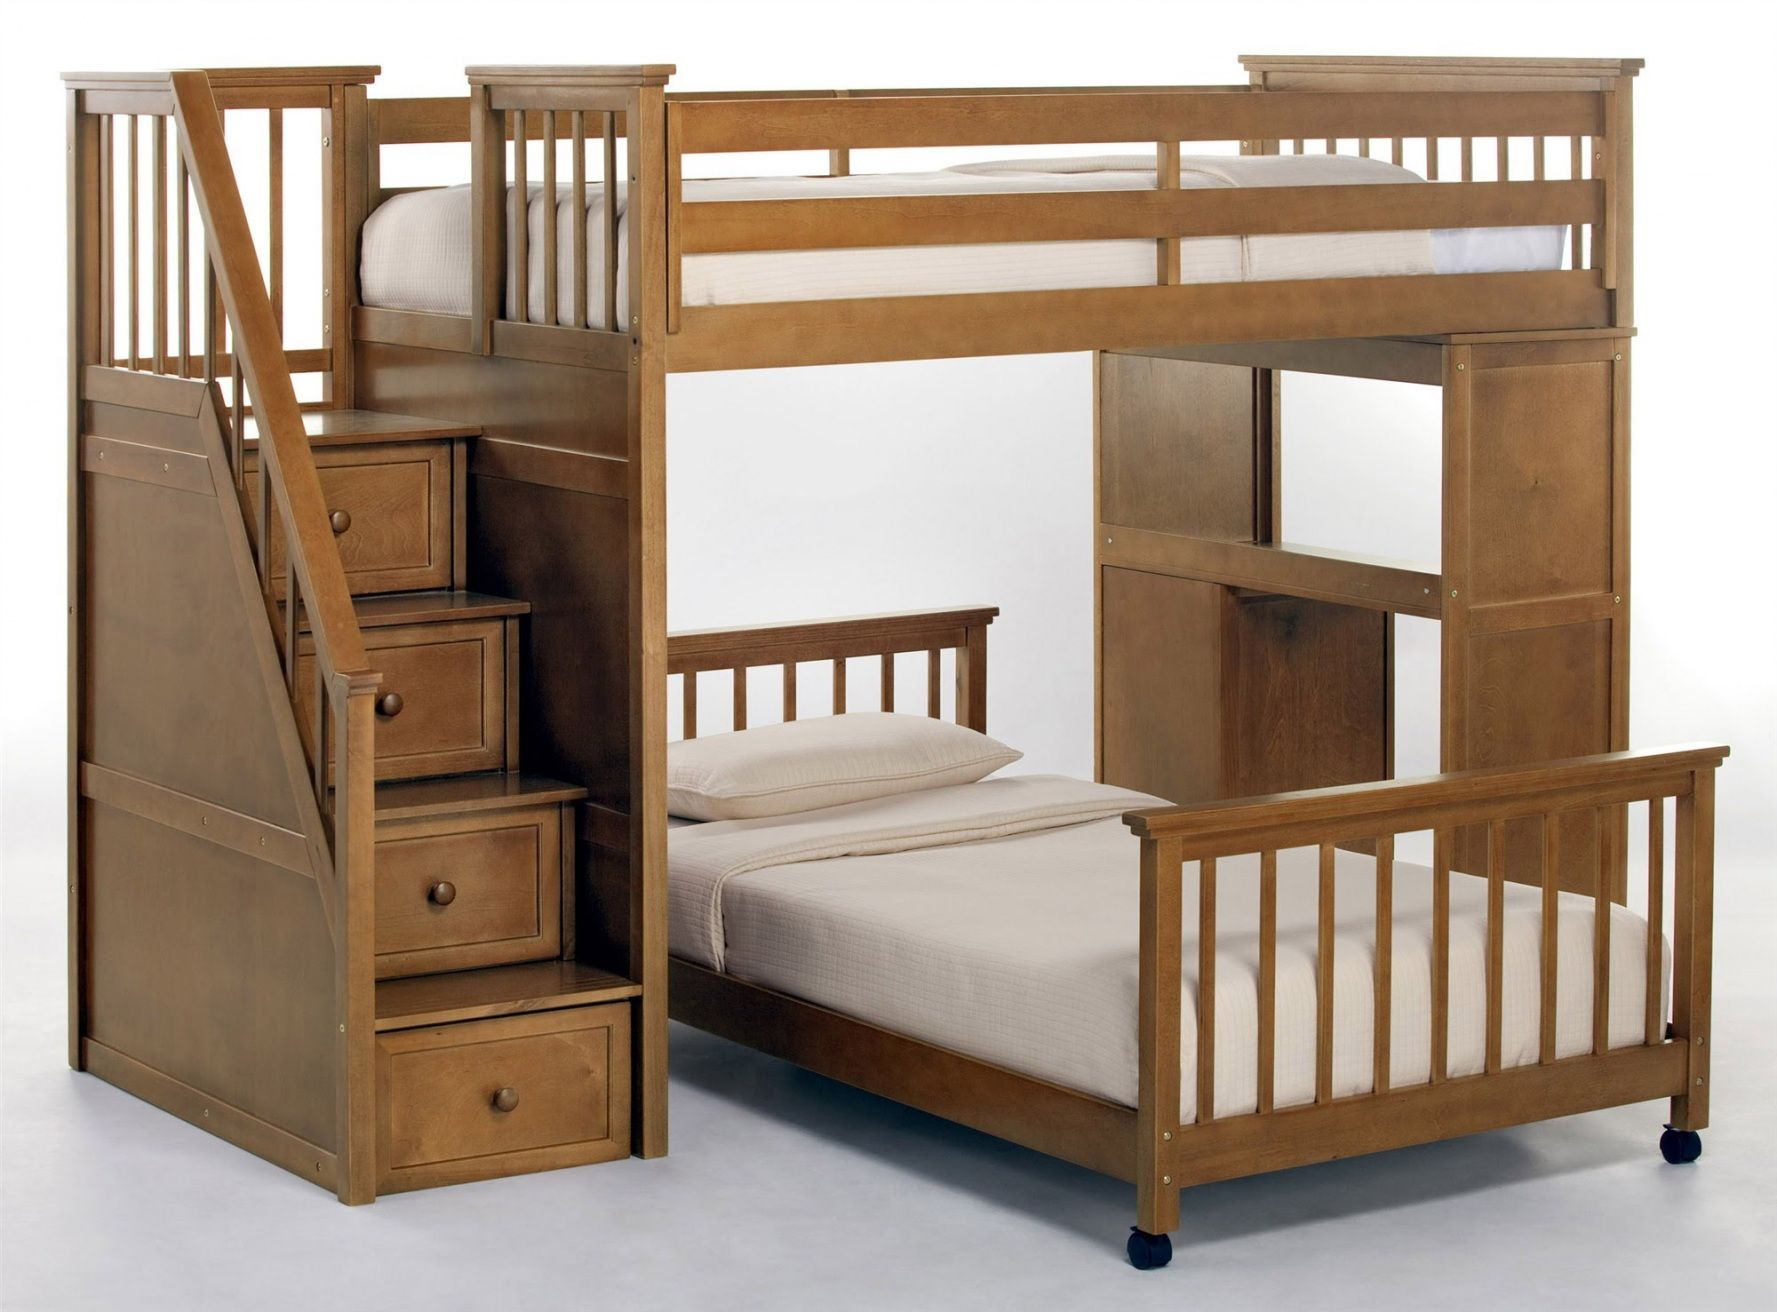 55+ Bunk Bed And Desk  Interior Designs For Bedrooms